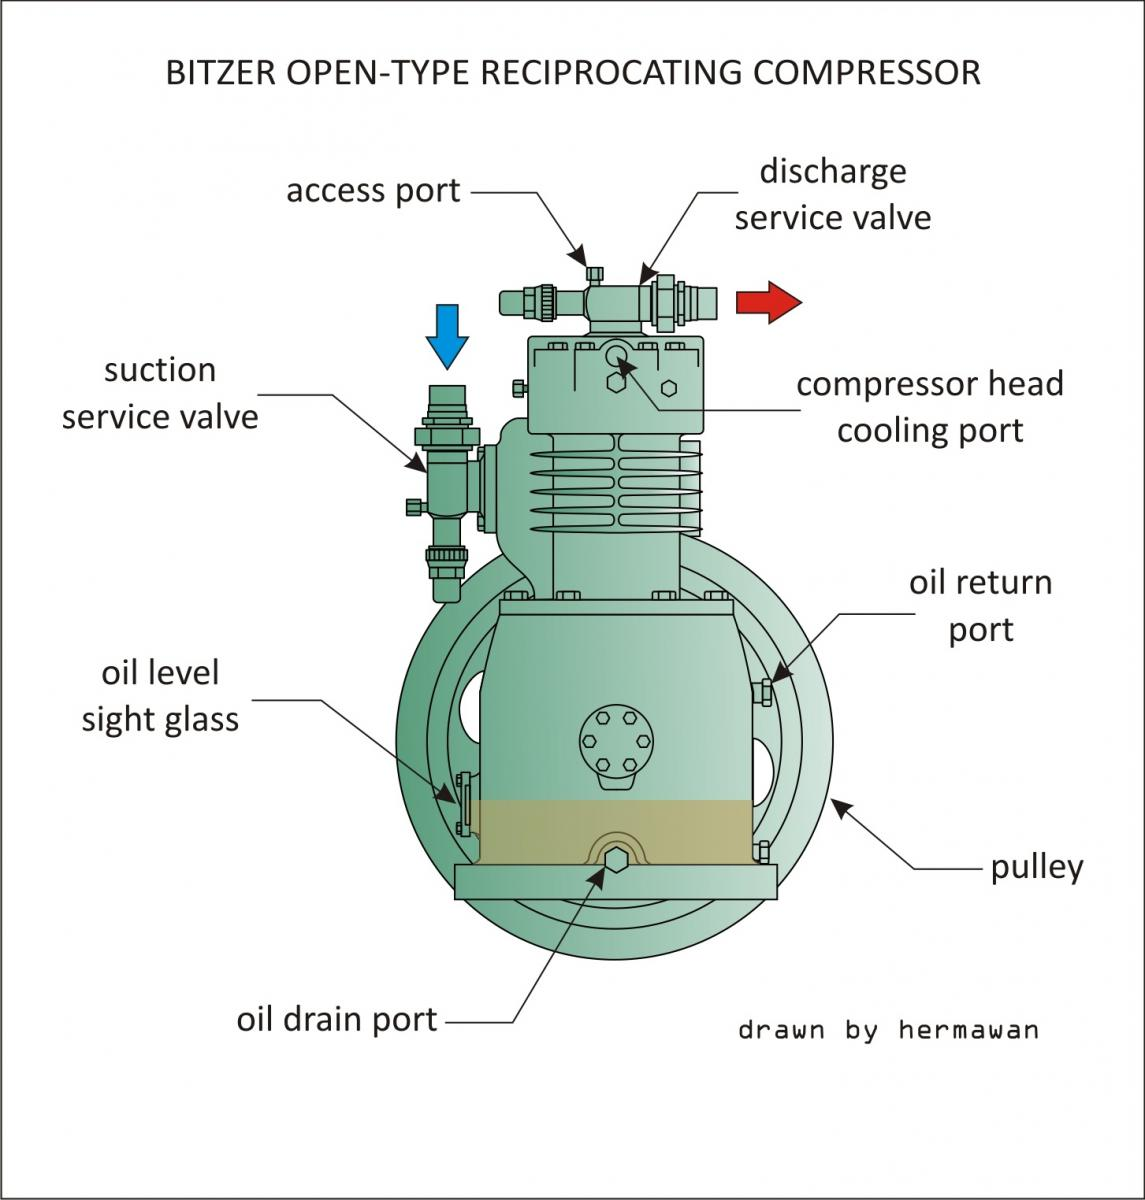 bitzer open type reciprocating compressor jpg members gallery rh mechanical engg com bitzer screw compressor wiring diagram